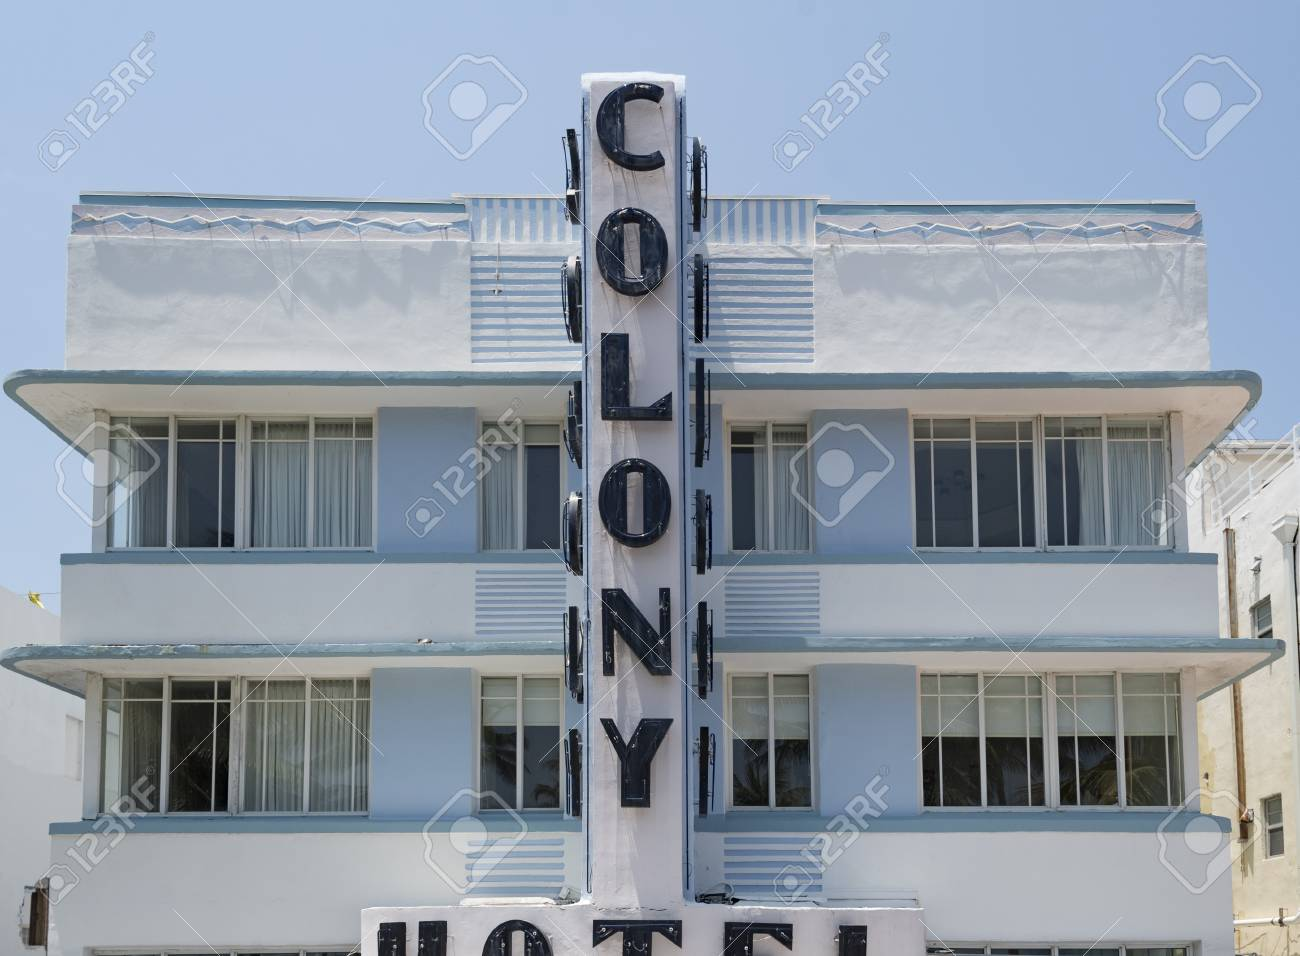 colony hotel facade pastel colored art deco building in daytime the